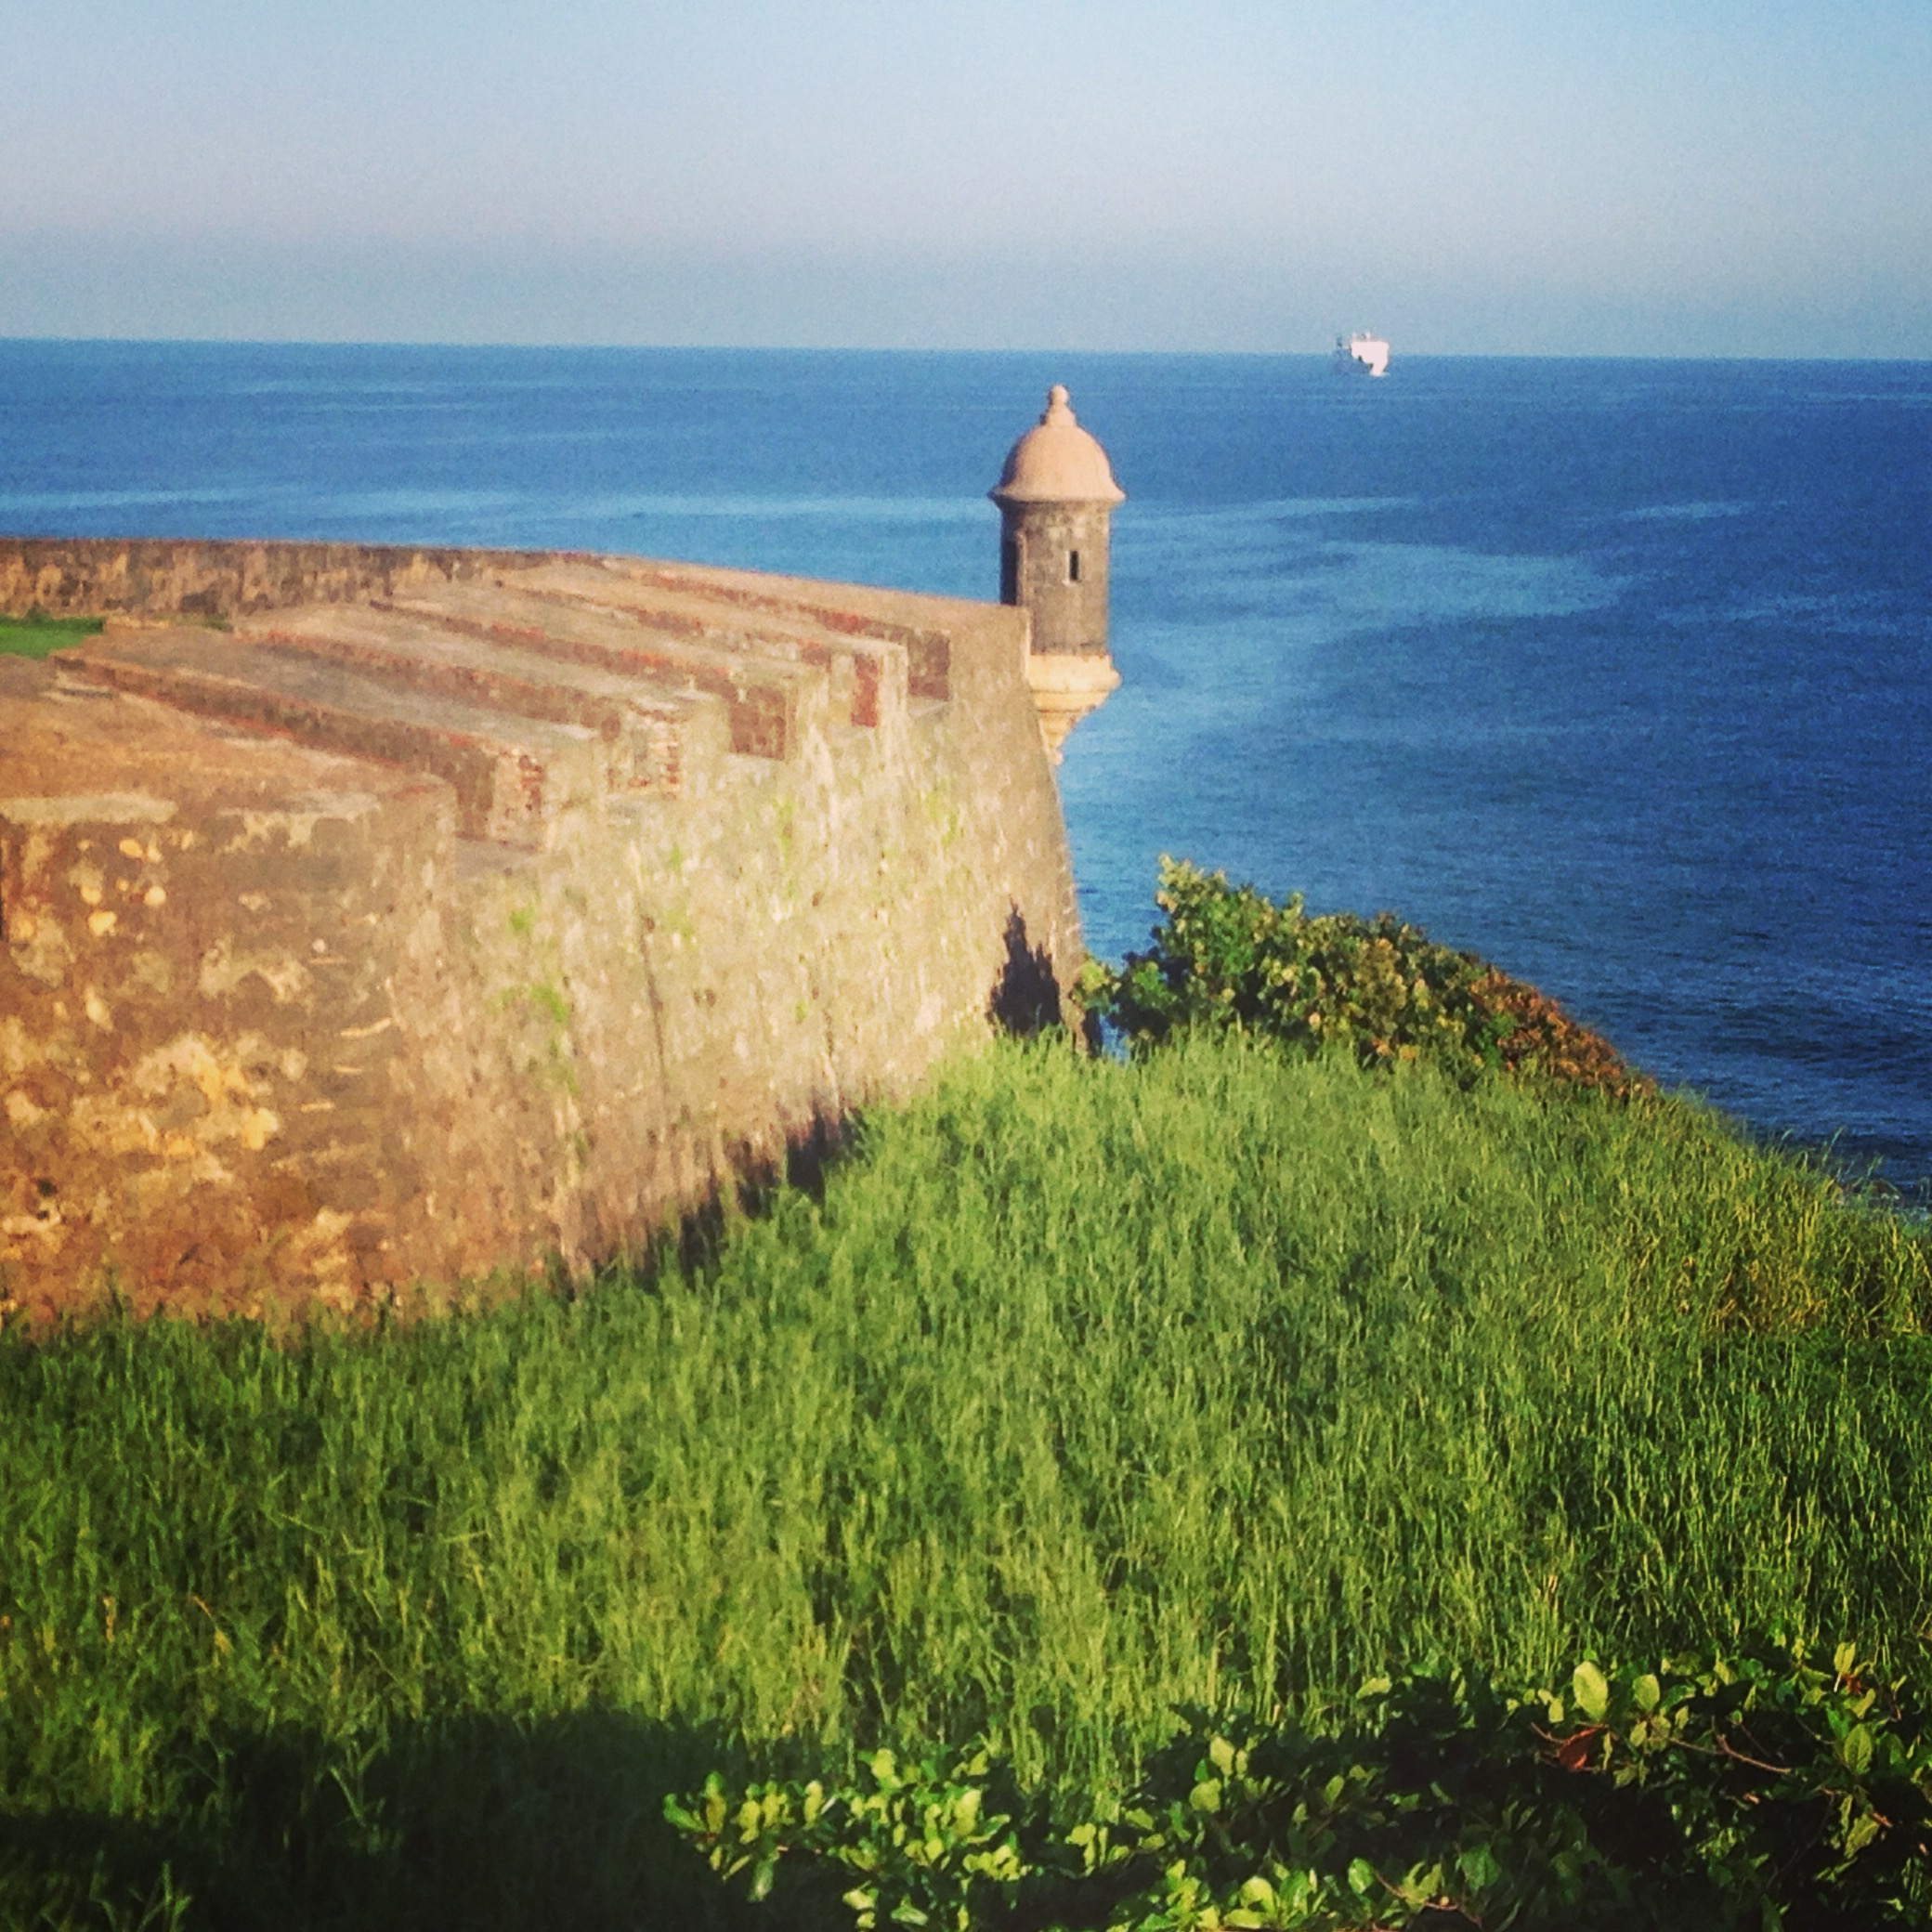 San Juan Fort Sea @GregWasThere